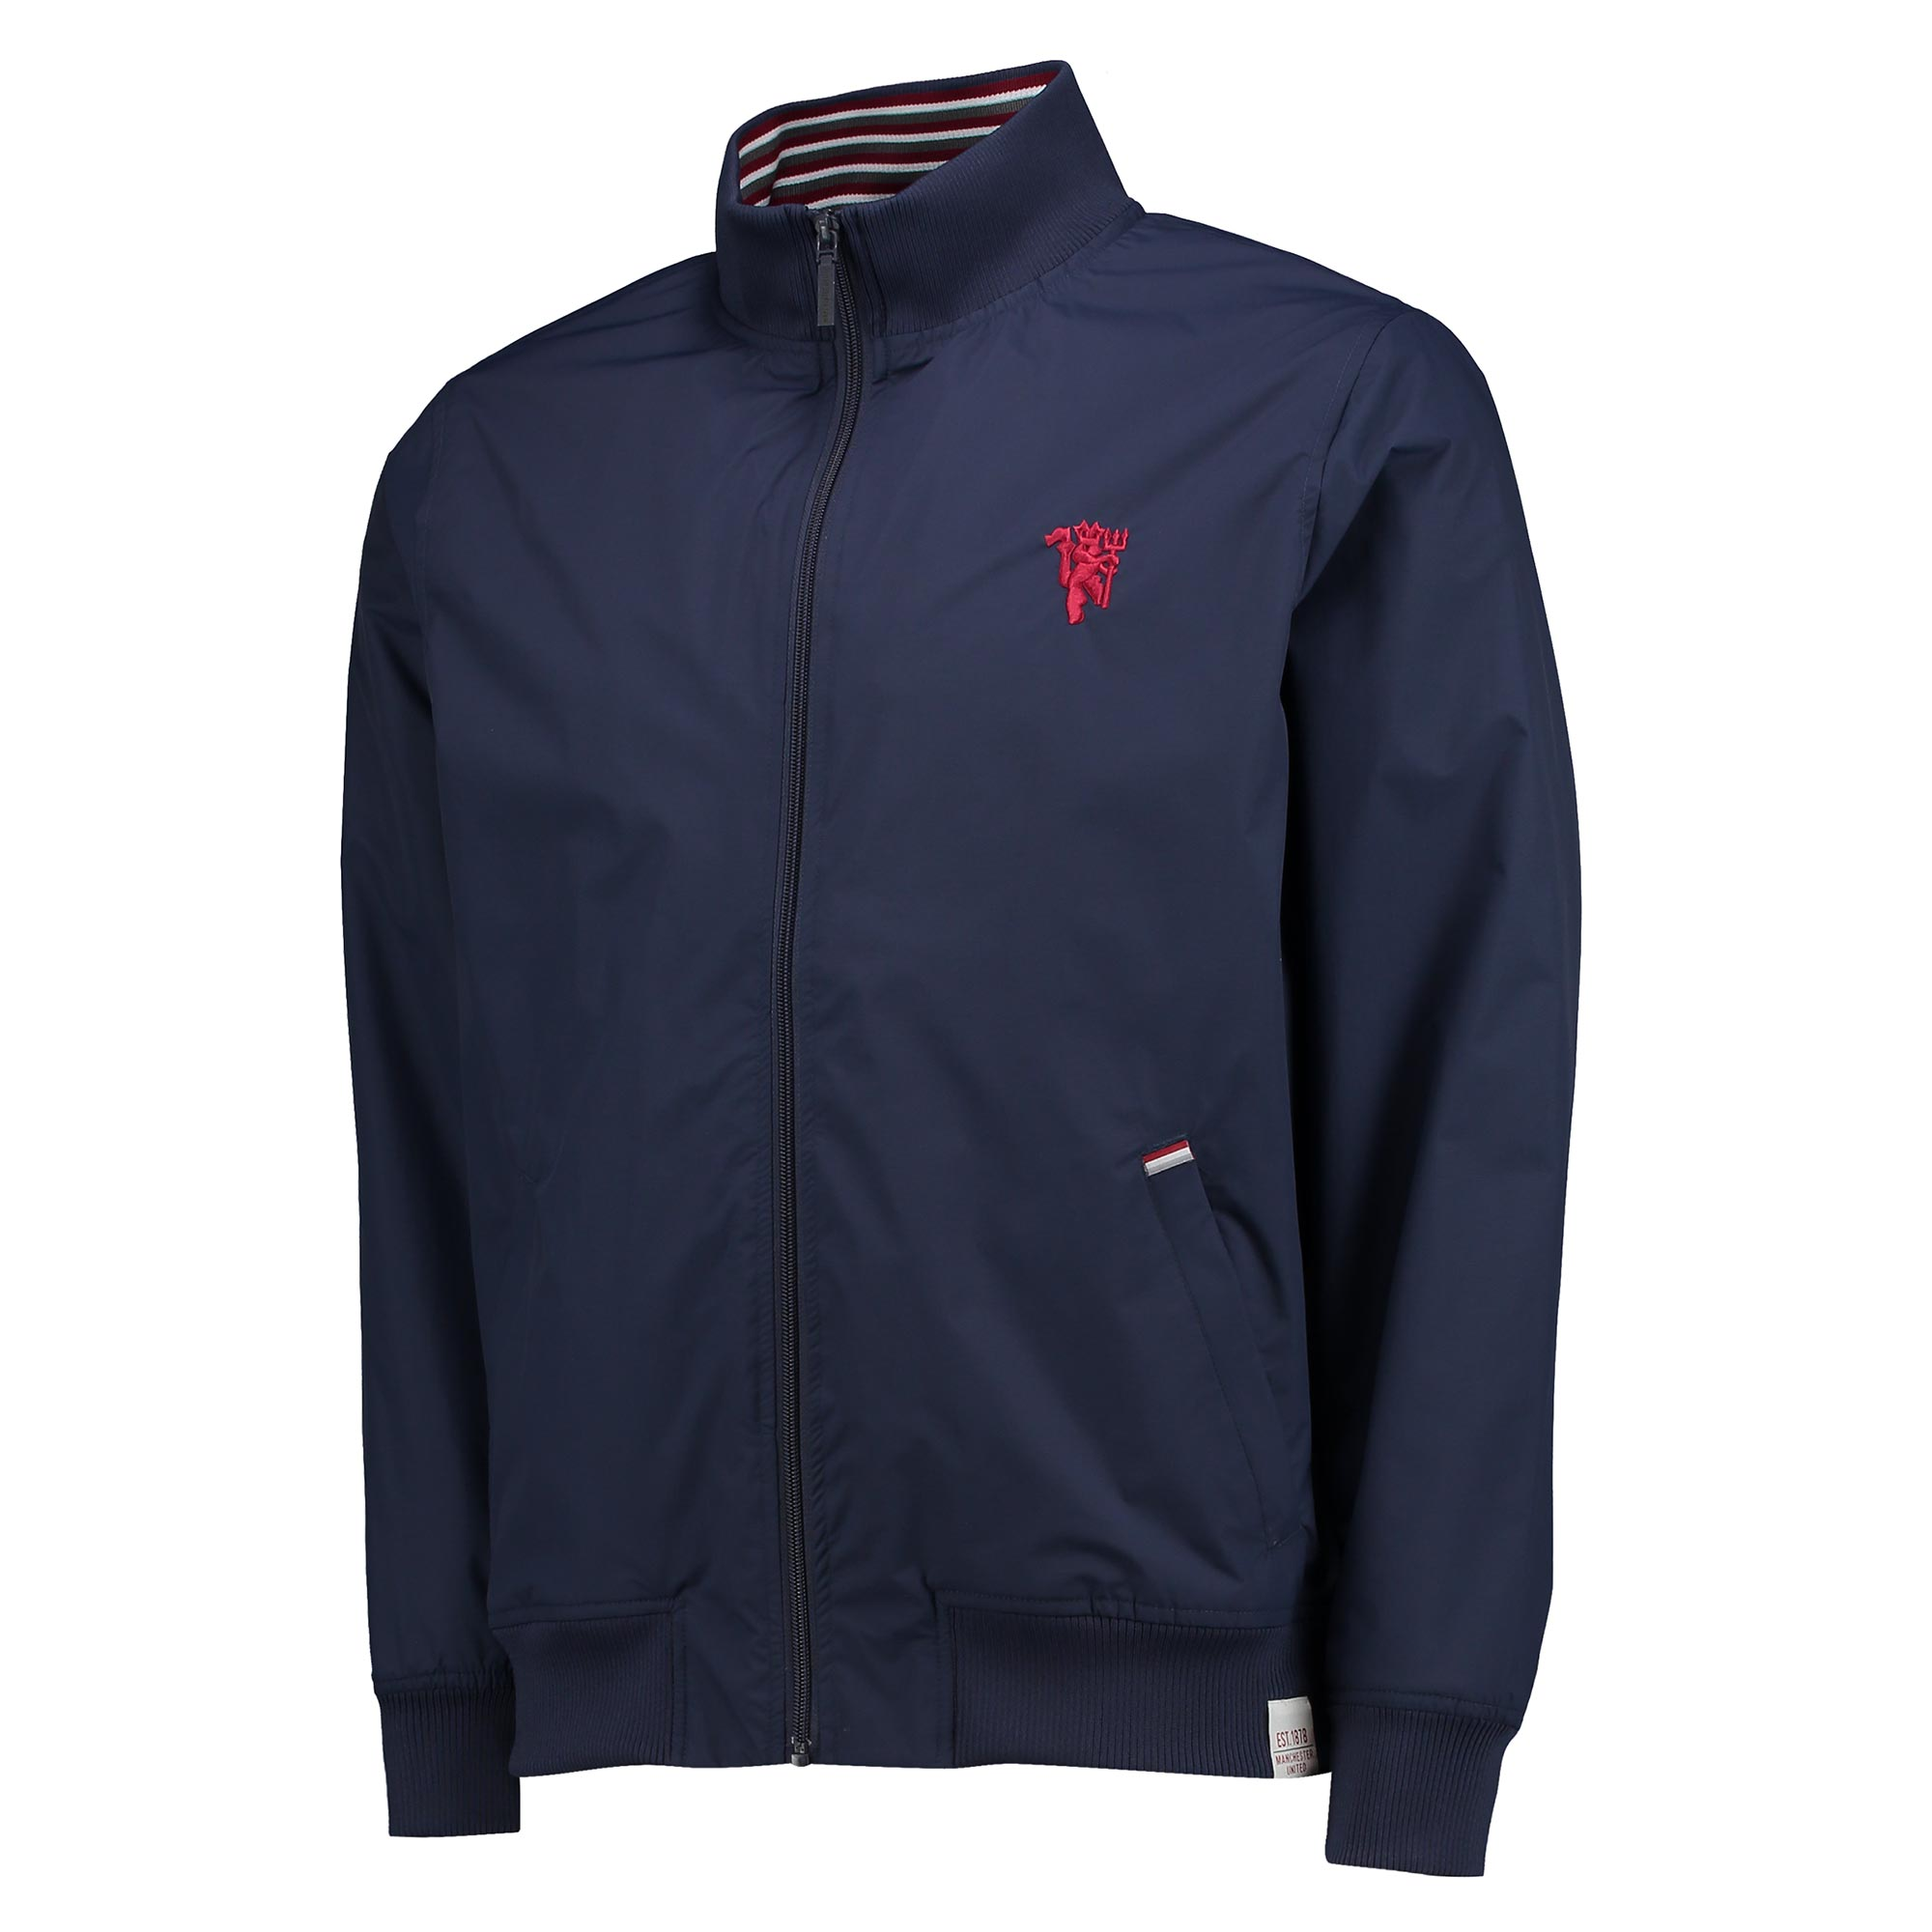 Manchester United Lifestyle Track Jacket - Midnight - Mens